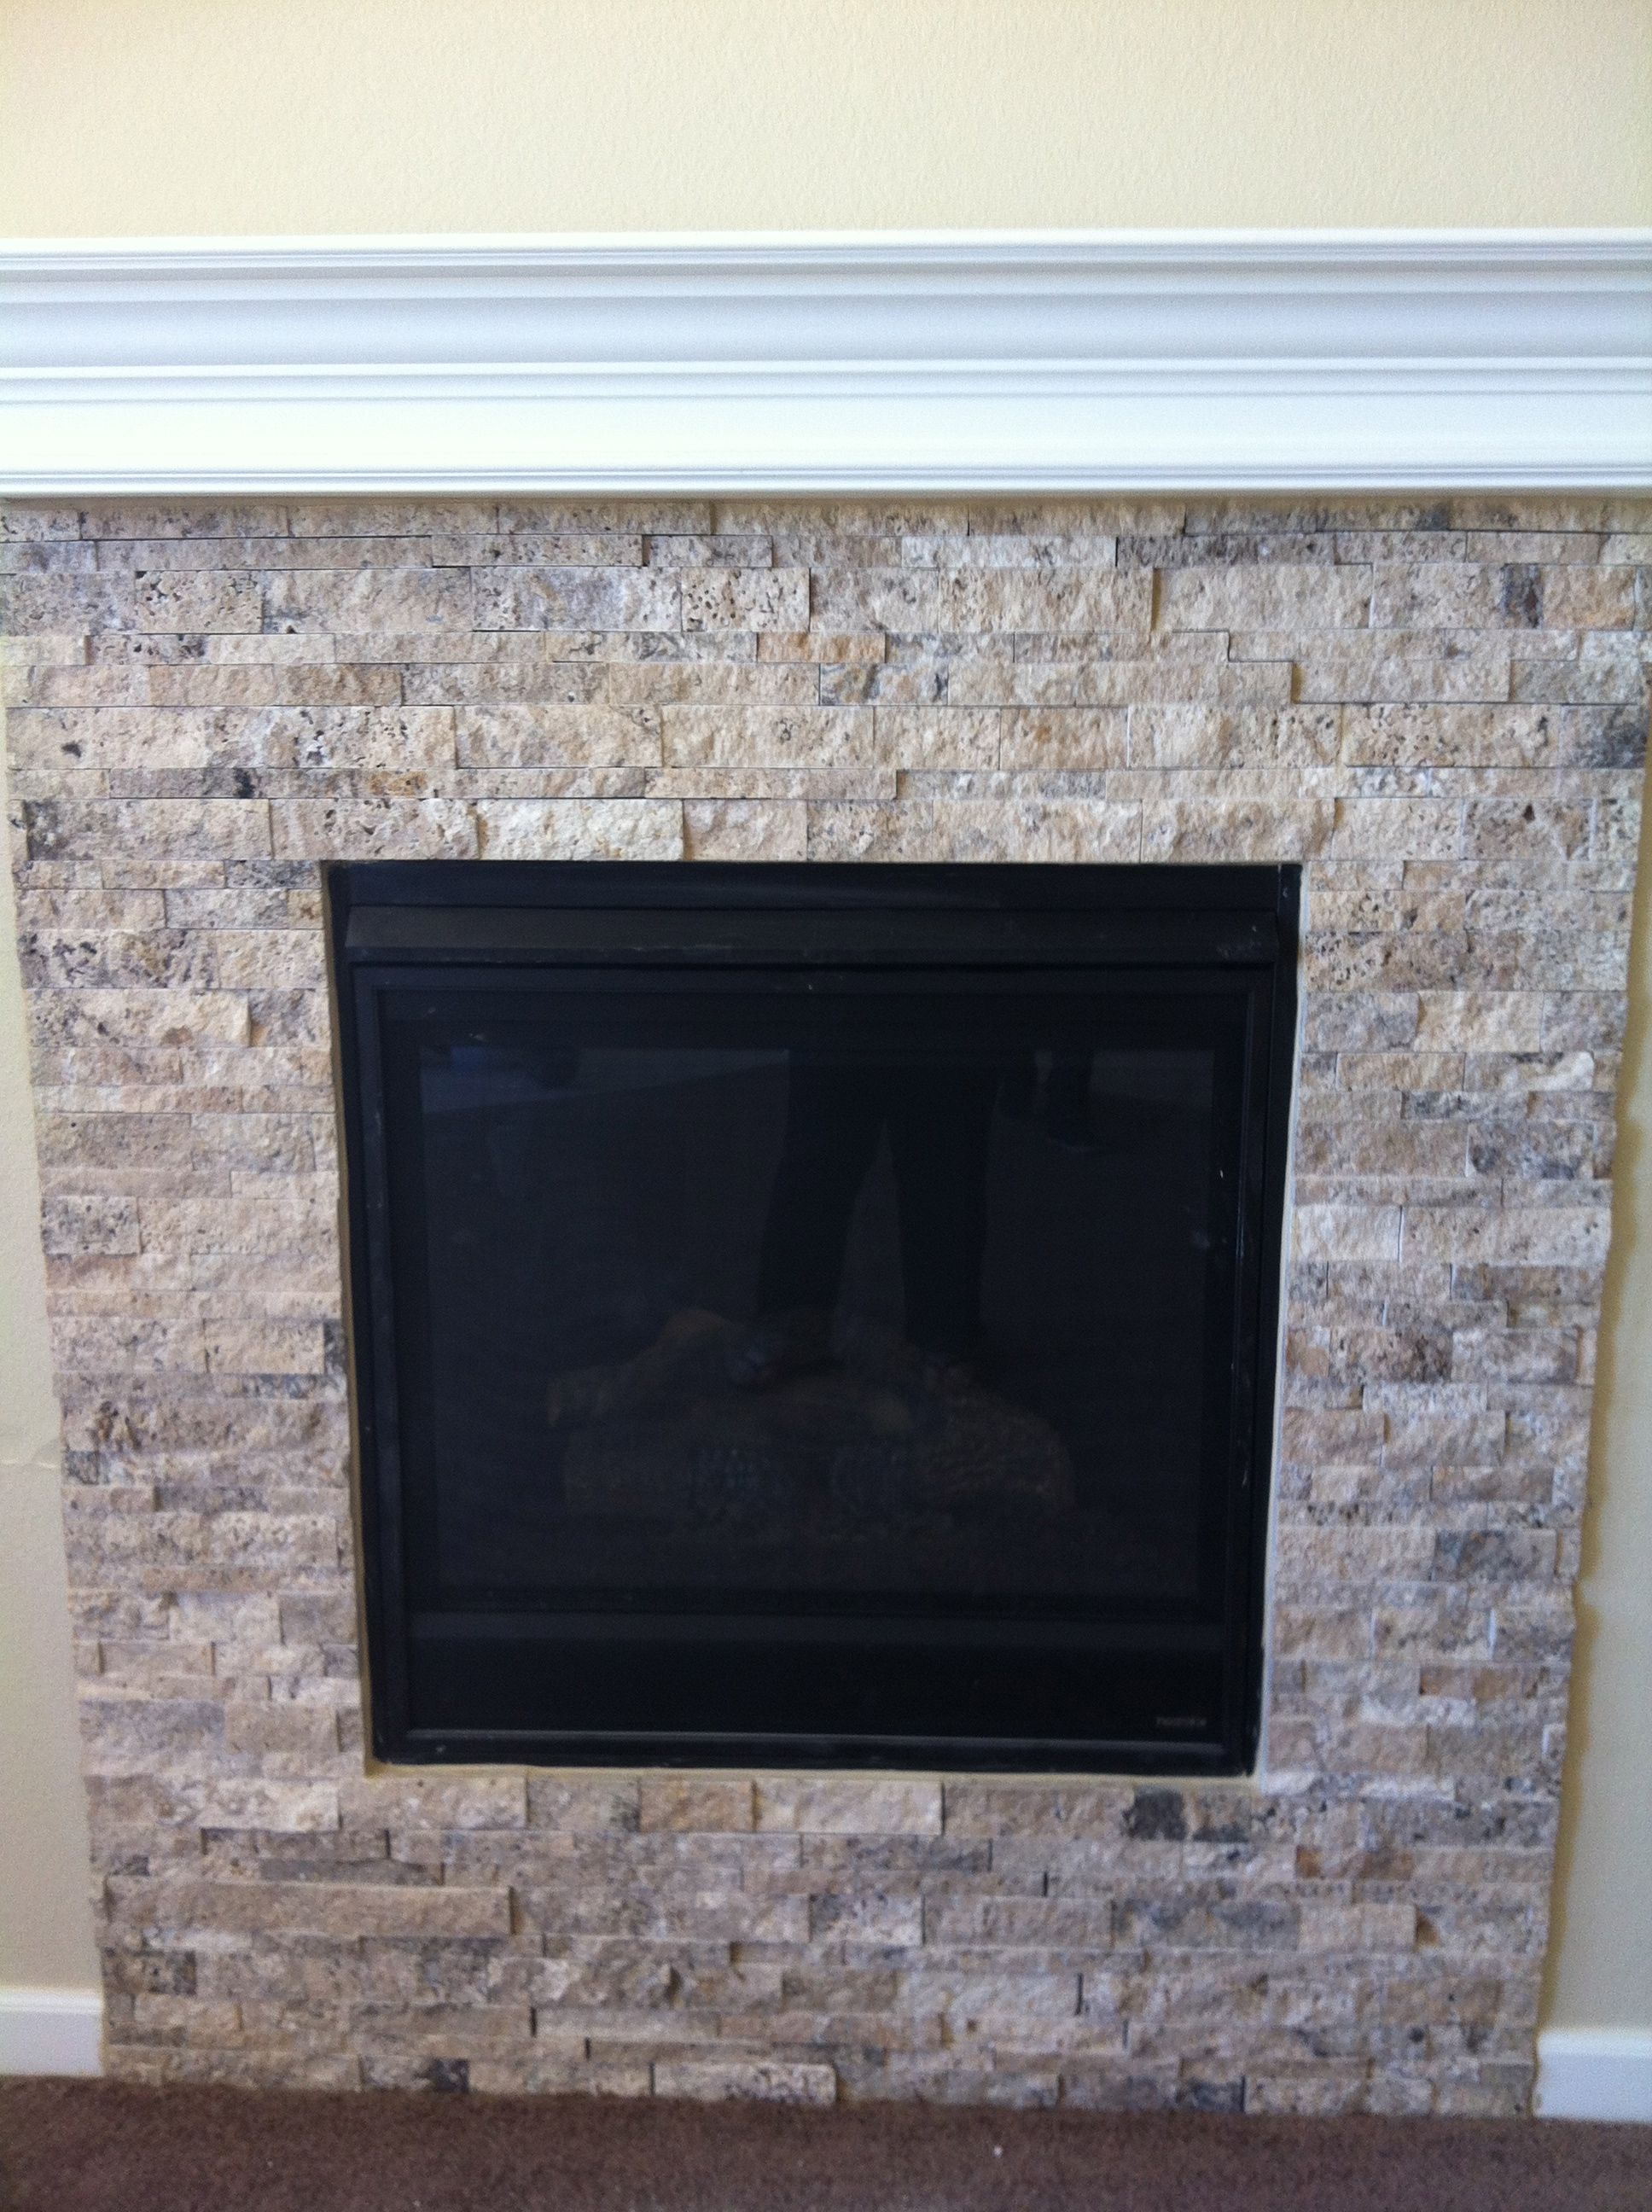 this is a fantastic tile to do this fireplace project with. an